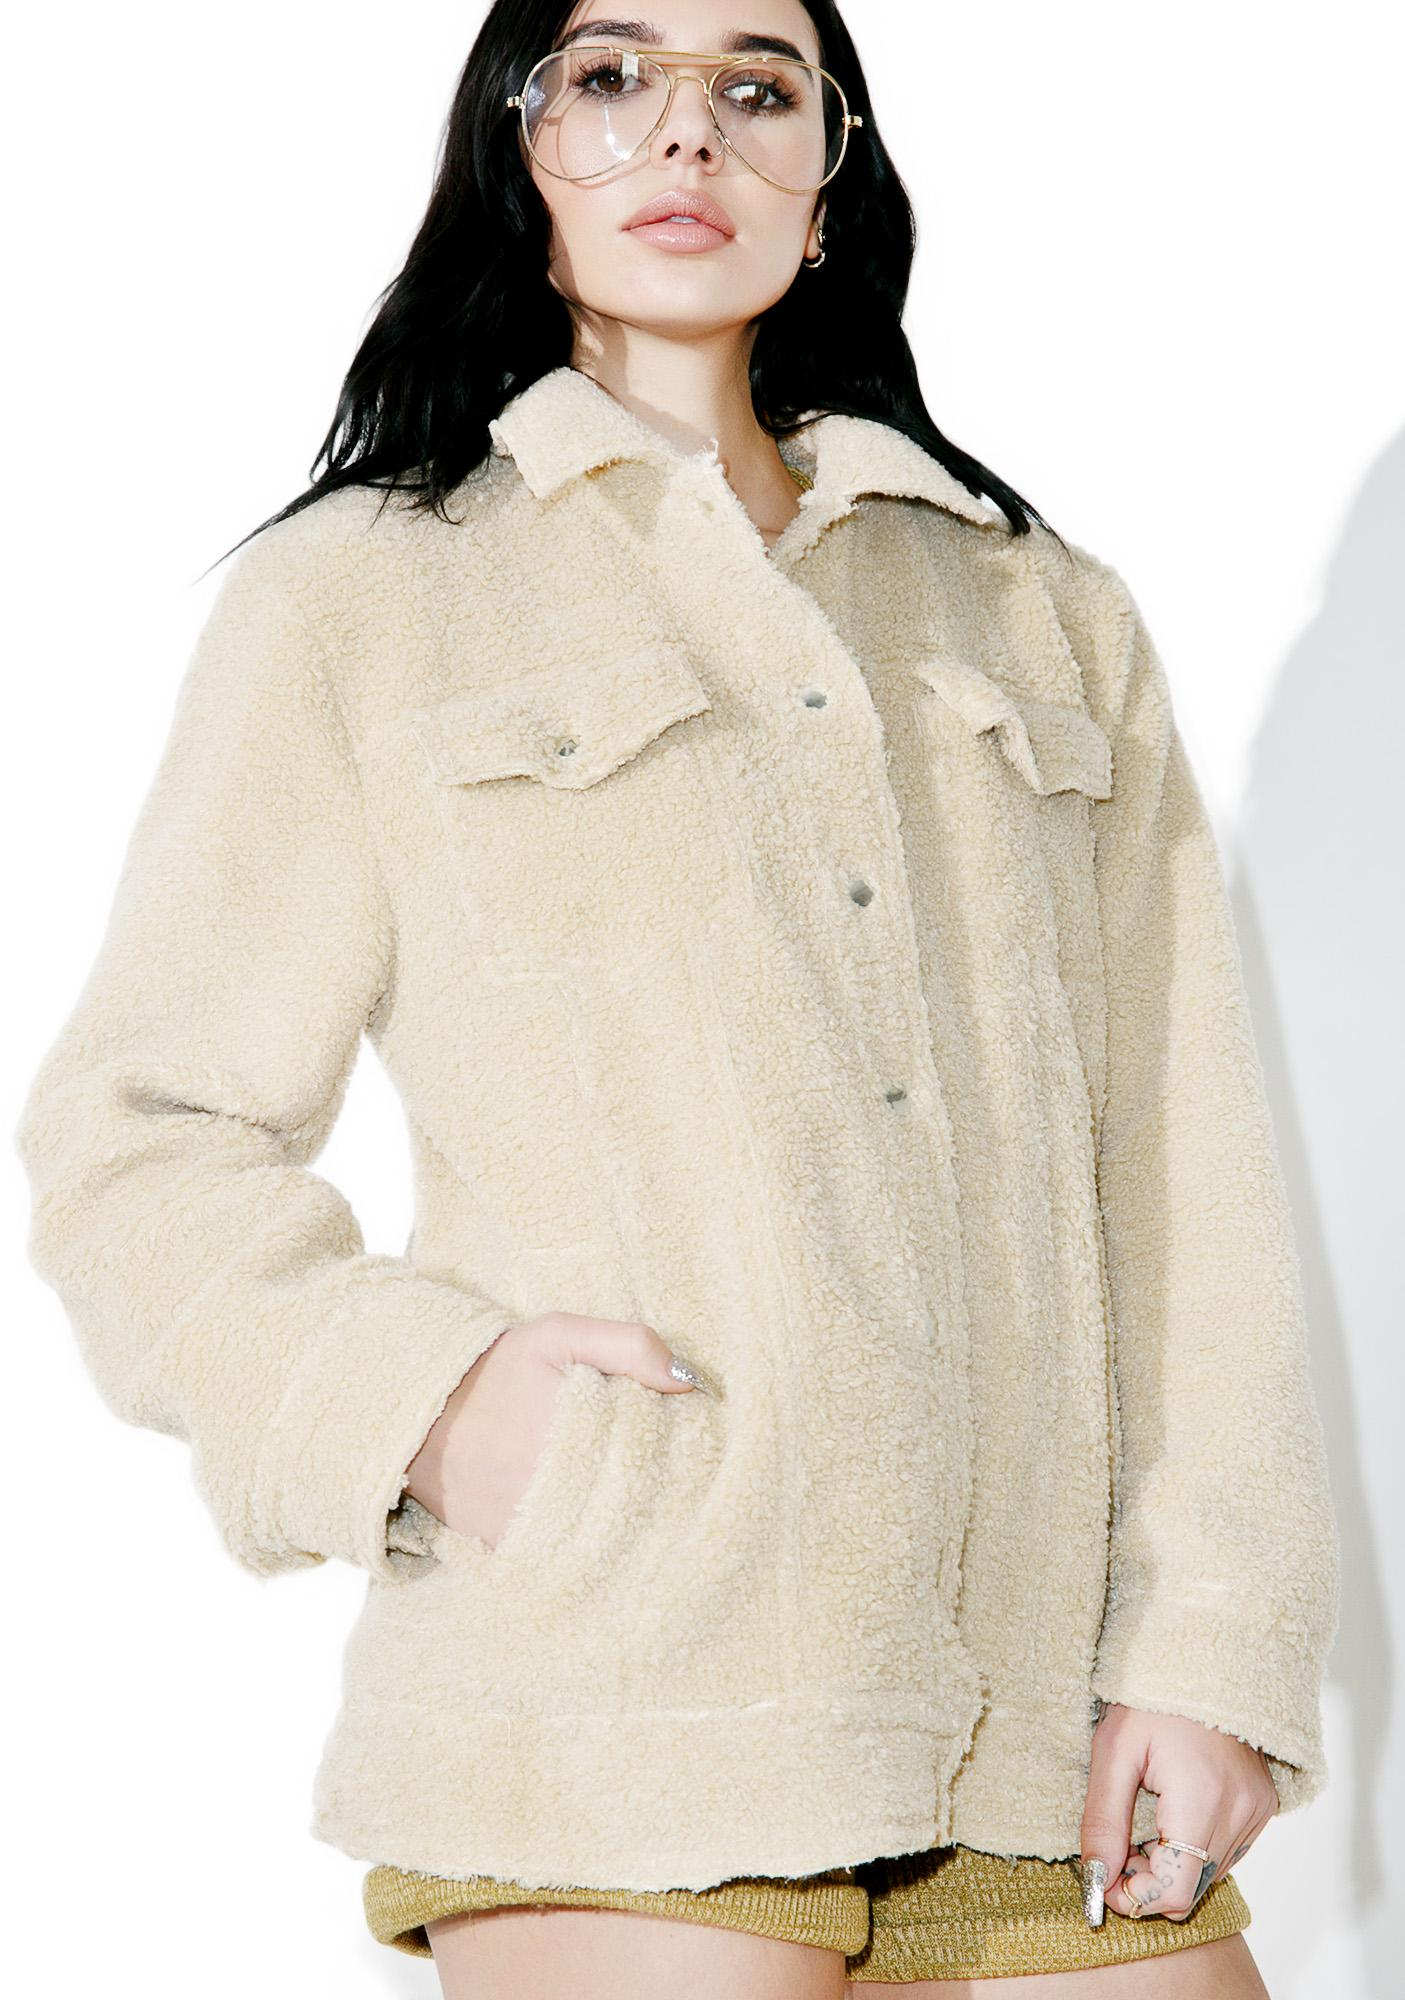 Buttermilk Shearling Jacket